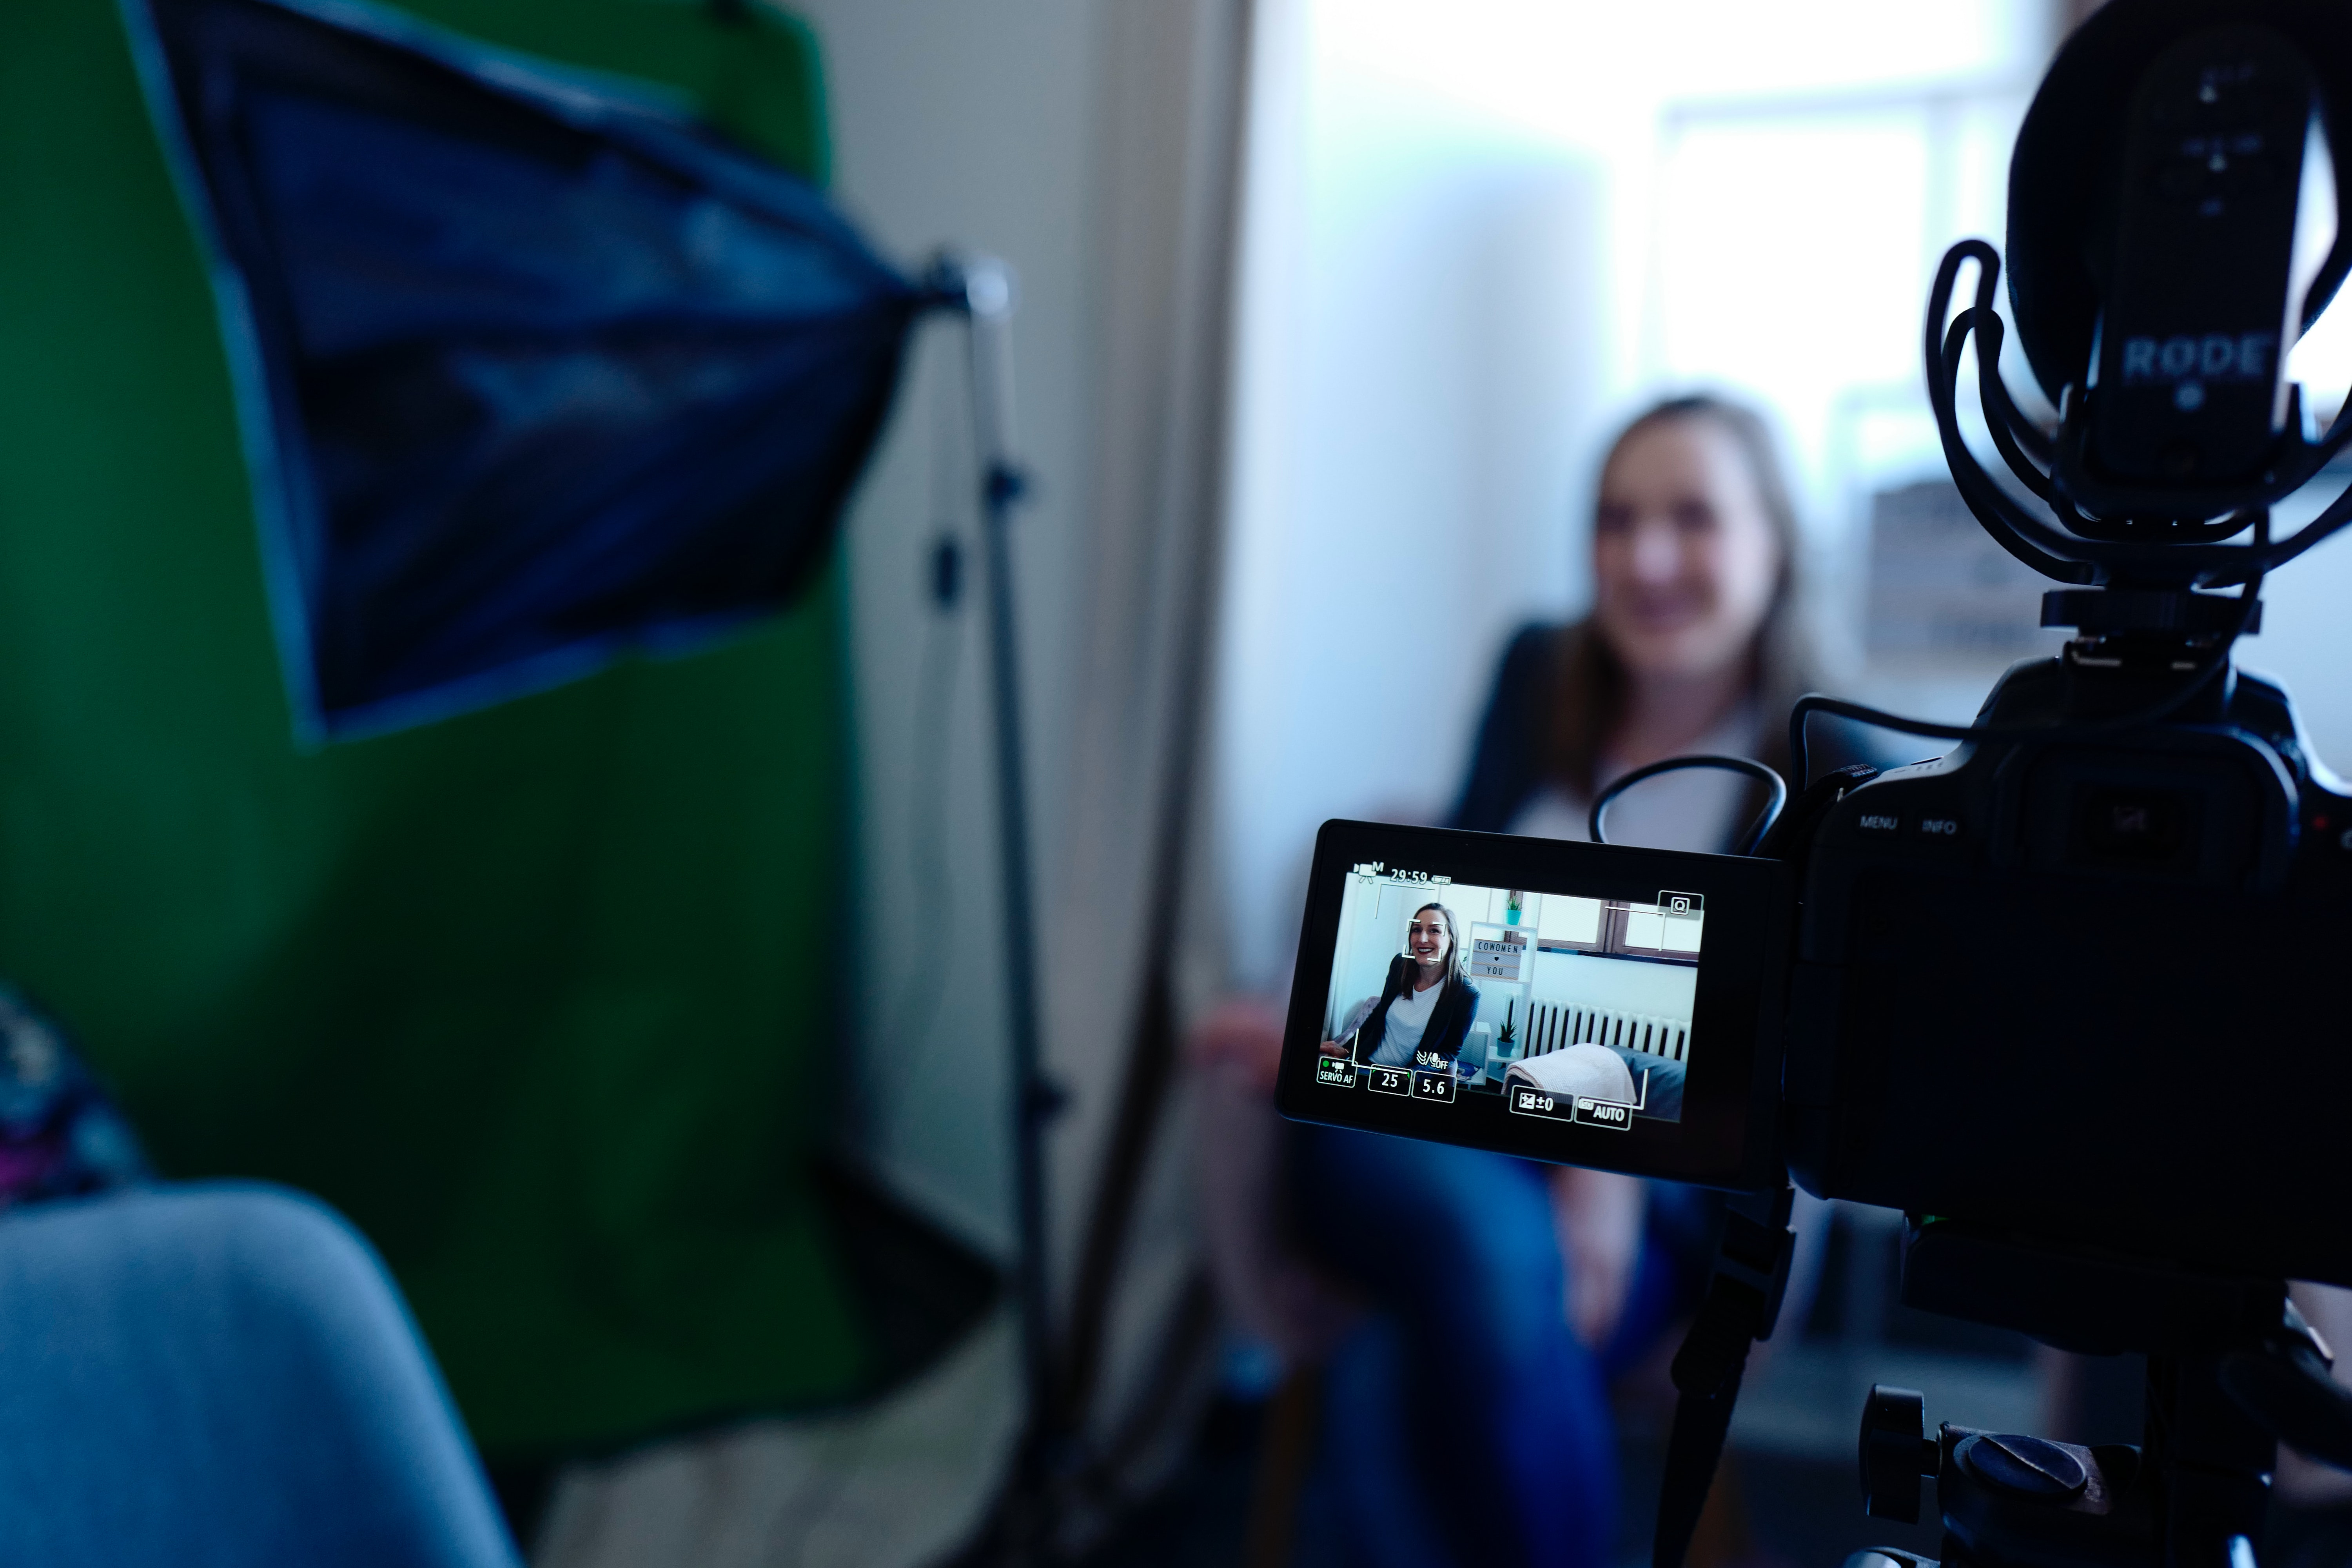 Topics for video podcasting